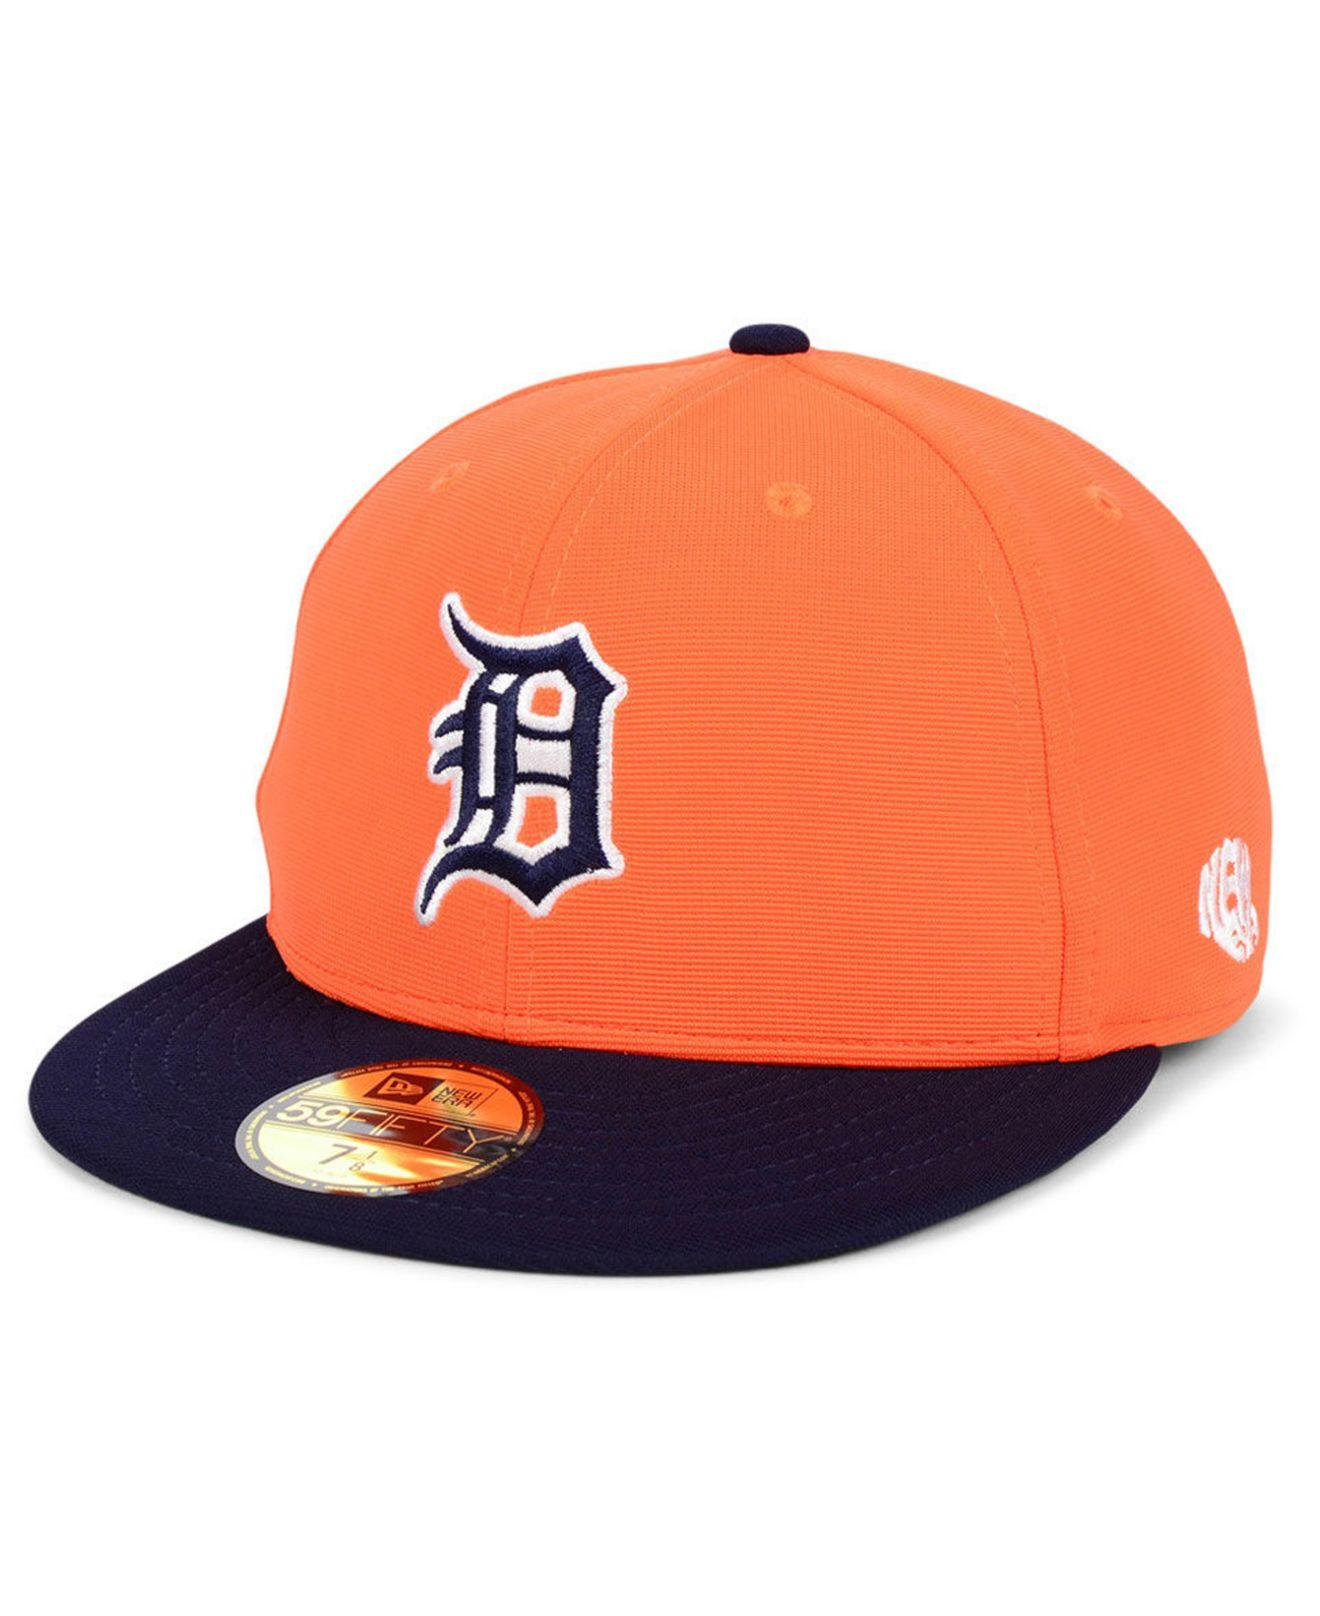 new product 2b090 3a95f KTZ. Men s Orange Detroit Tigers Cooperstown Flip 59fifty Fitted Cap